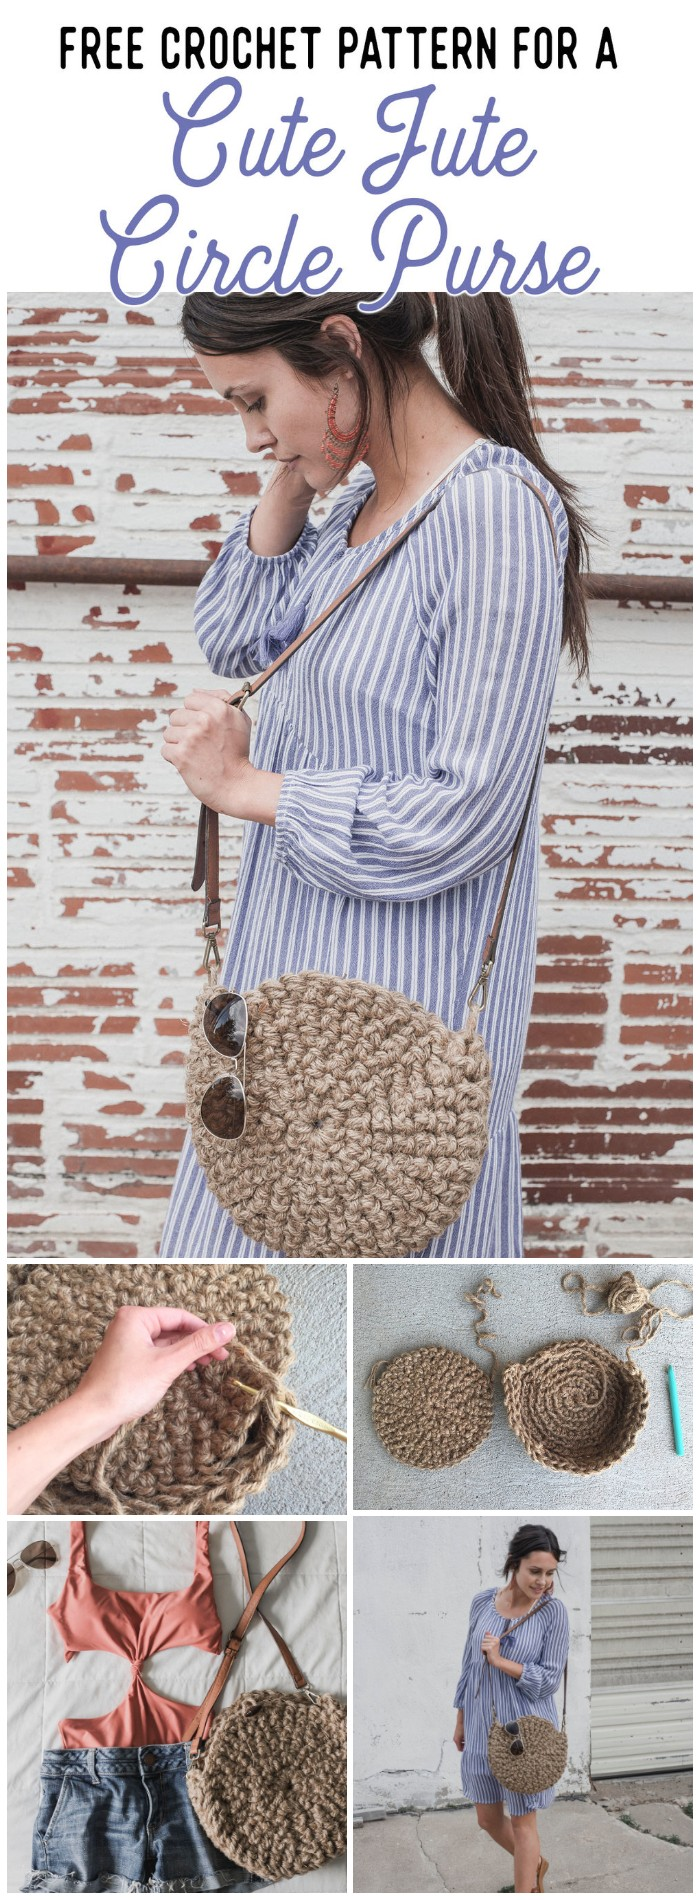 Free Crochet Pattern for The Cute Jute Circle Purse